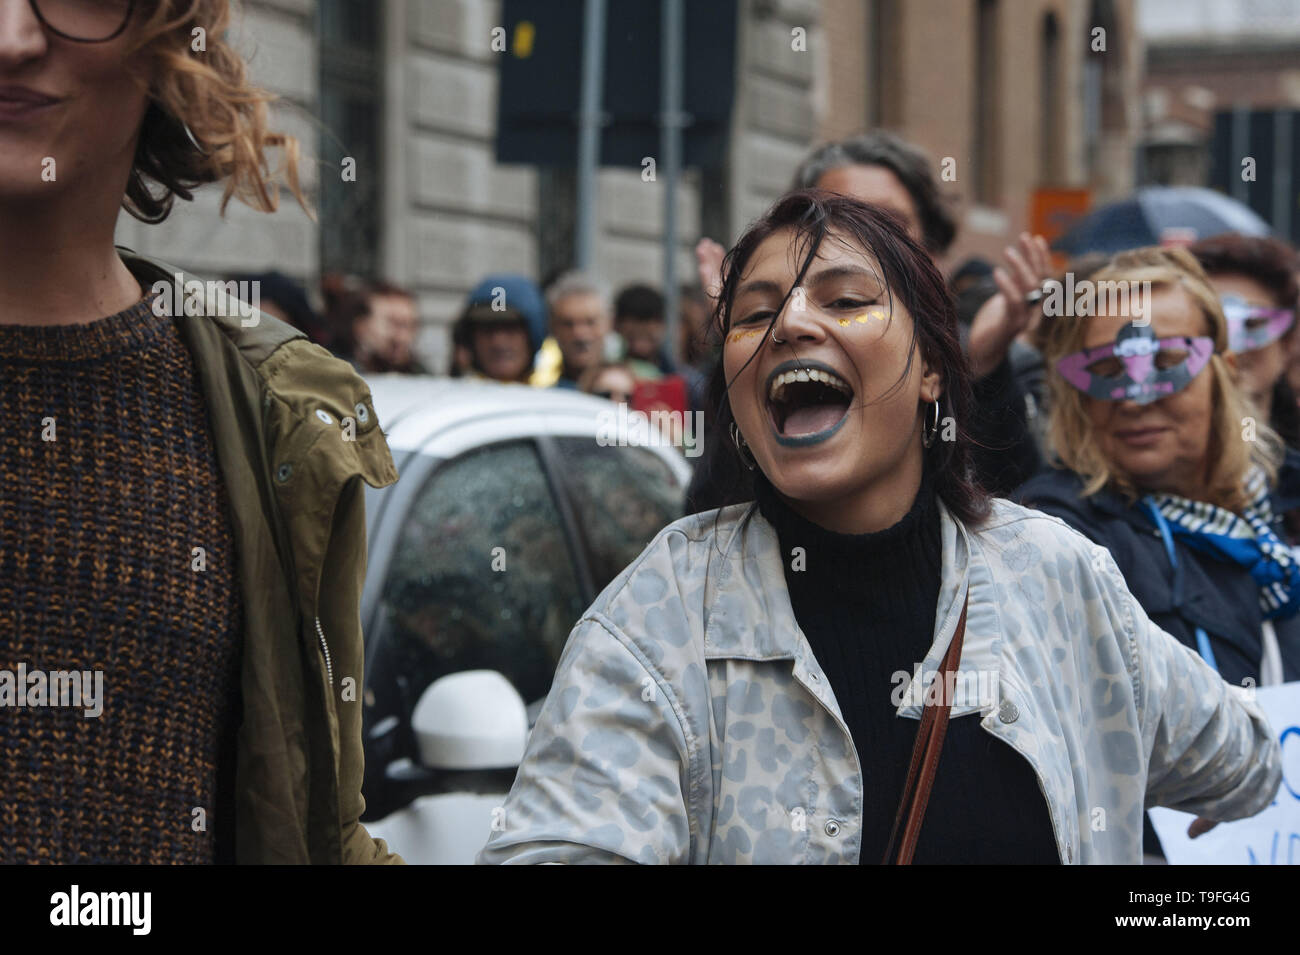 Milano, Lombardia, Italy. 18th May, 2019. A woman seen shouting during the protest.The feminist movement Non Una di Meno, together with other Italian associations, protested against the European election's closing meeting with Matteo Salvini, leader of the Populist Party the League and Italian Ministry of Interior and Vice Premier and Marine Le Pen and the uprising of fascism, far right, xenophobia and extremism in Europe. Credit: Valeria Ferraro/SOPA Images/ZUMA Wire/Alamy Live News - Stock Image